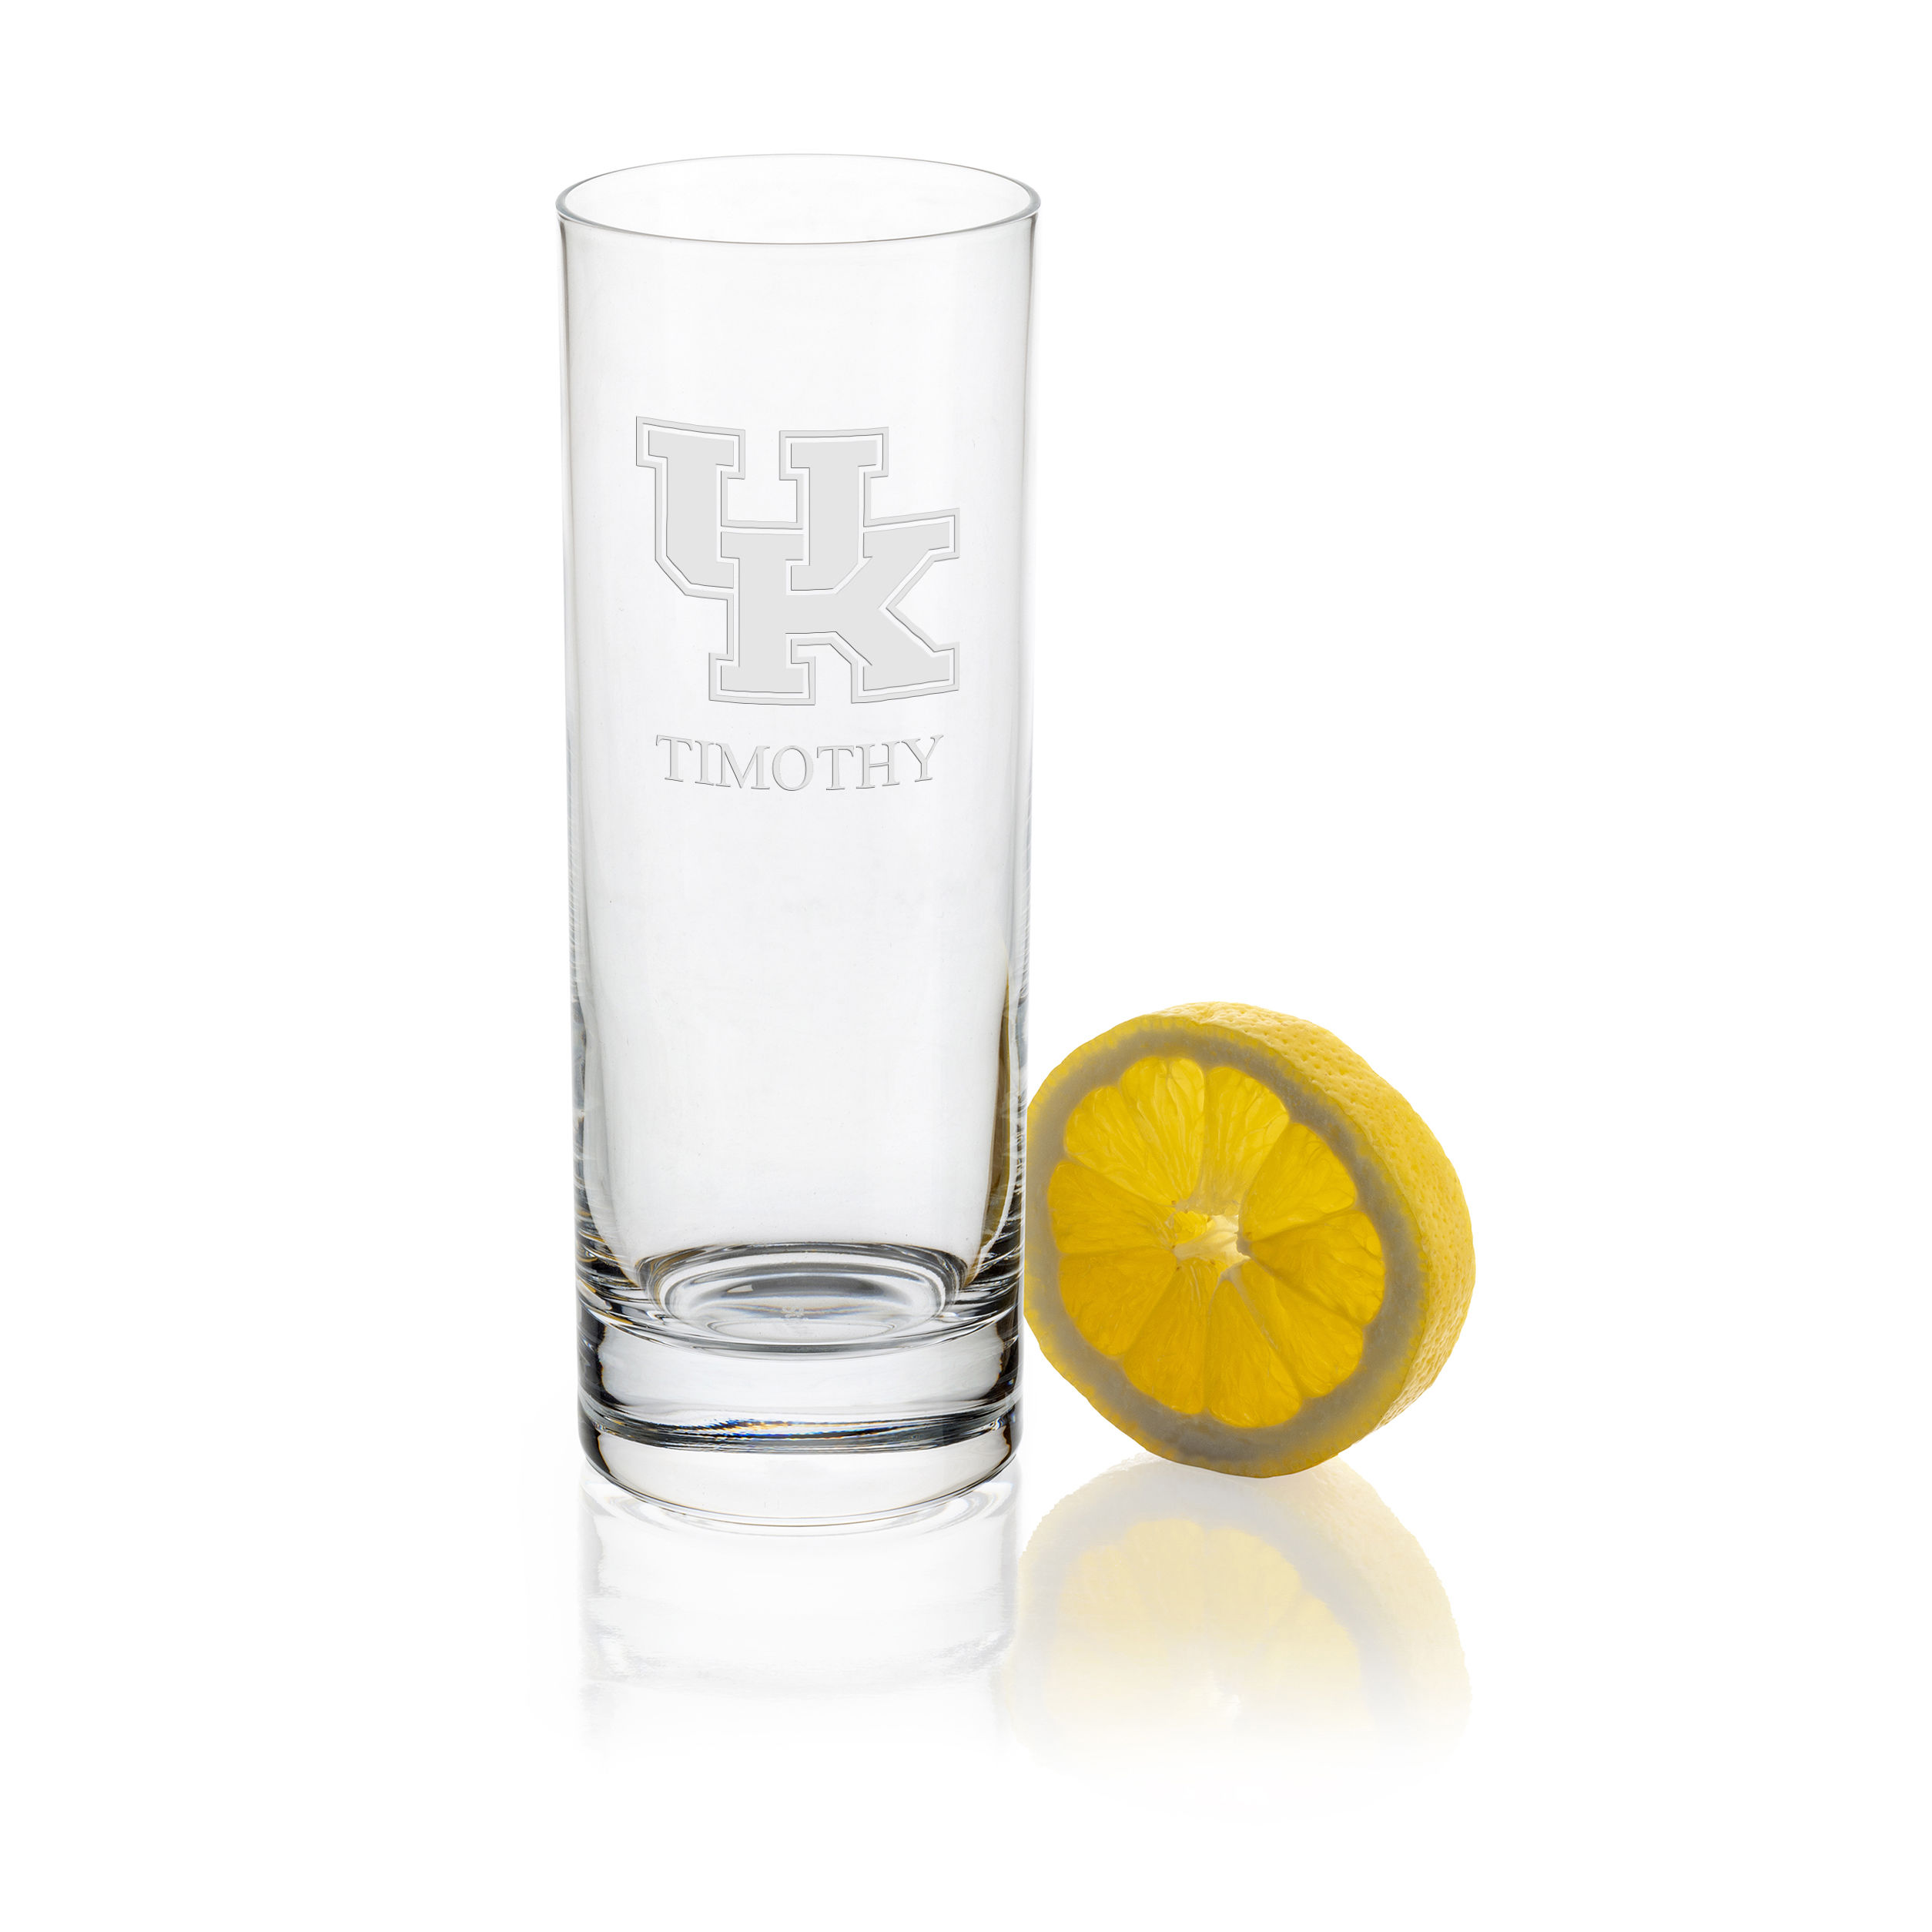 University of Kentucky Iced Beverage Glasses - Set of 2